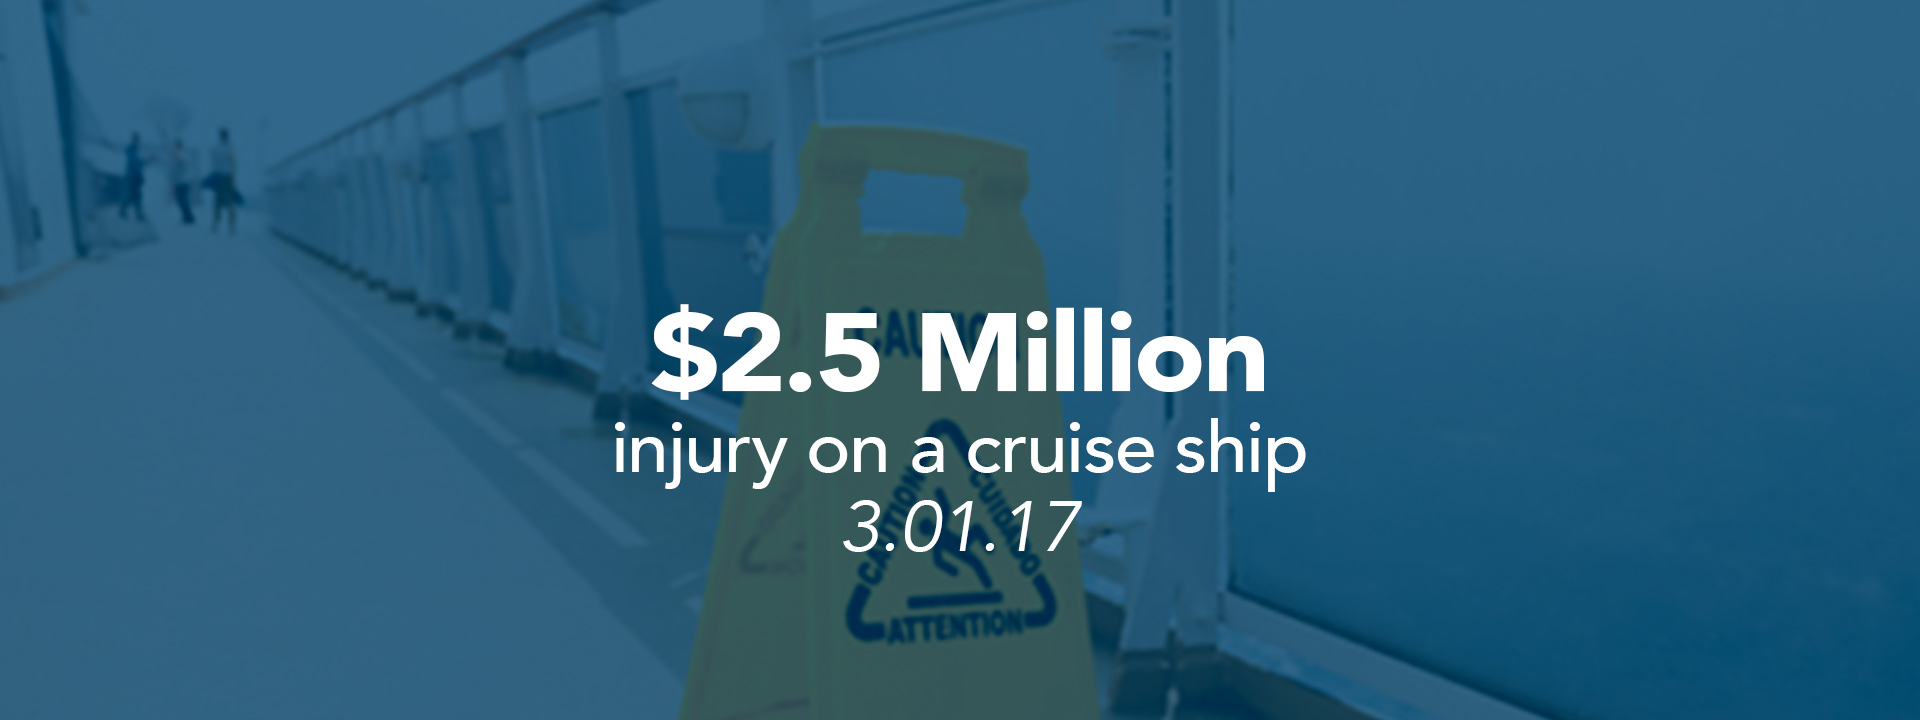 cruise-ship-injury-settlement